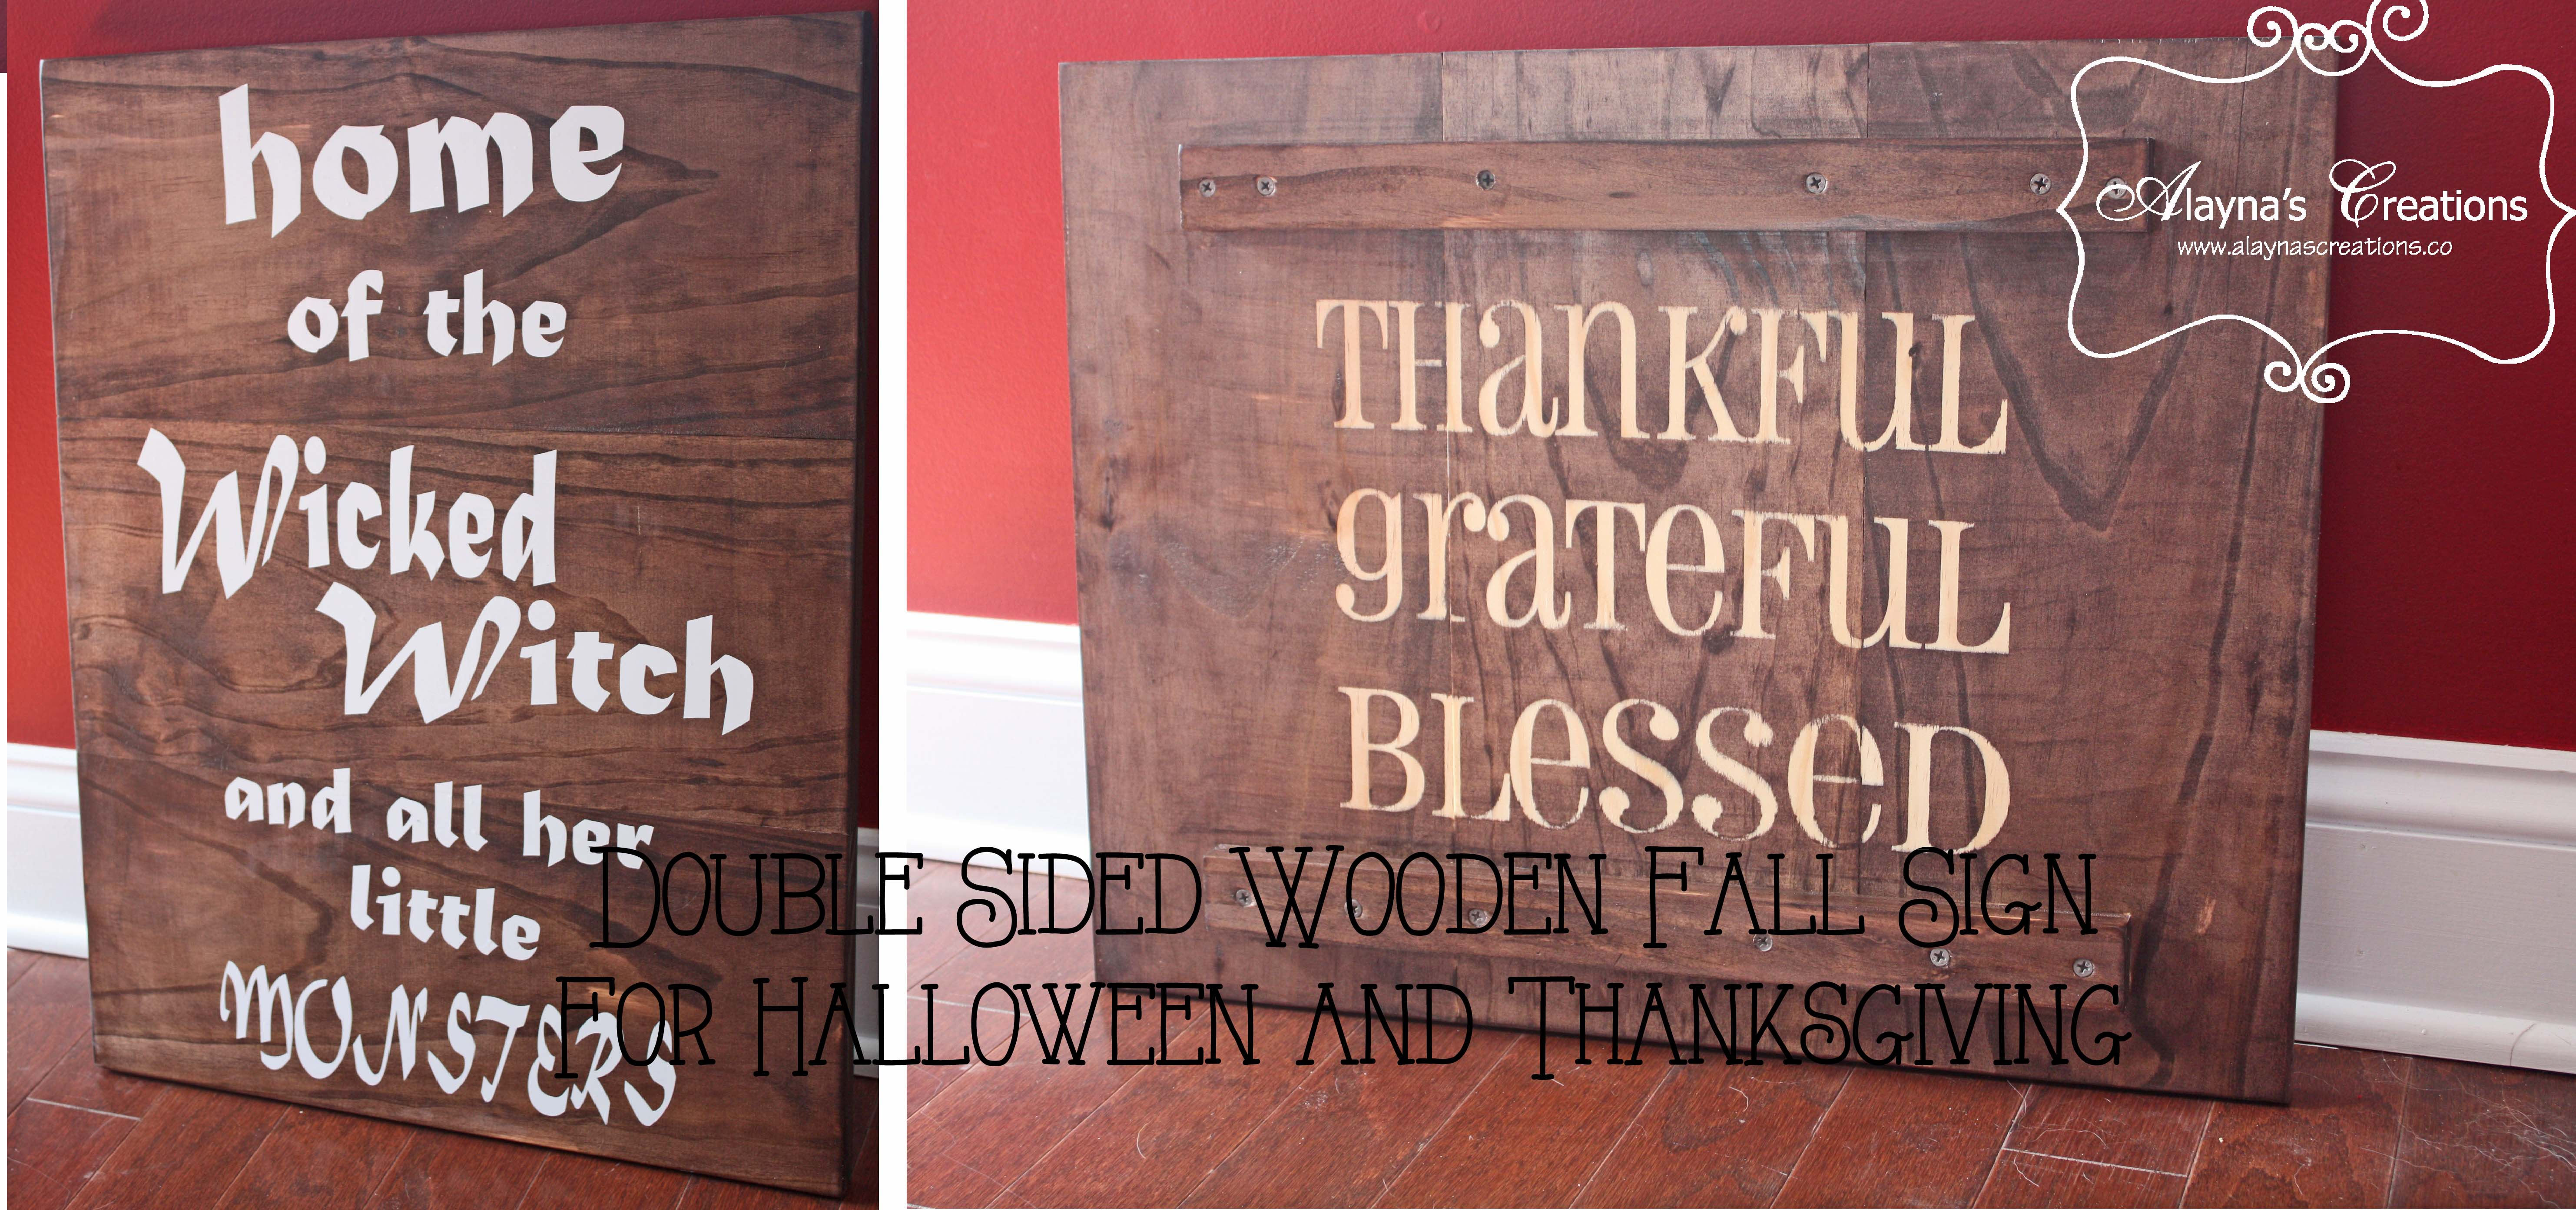 diy wooden sign for fall double sided for halloween and. Black Bedroom Furniture Sets. Home Design Ideas